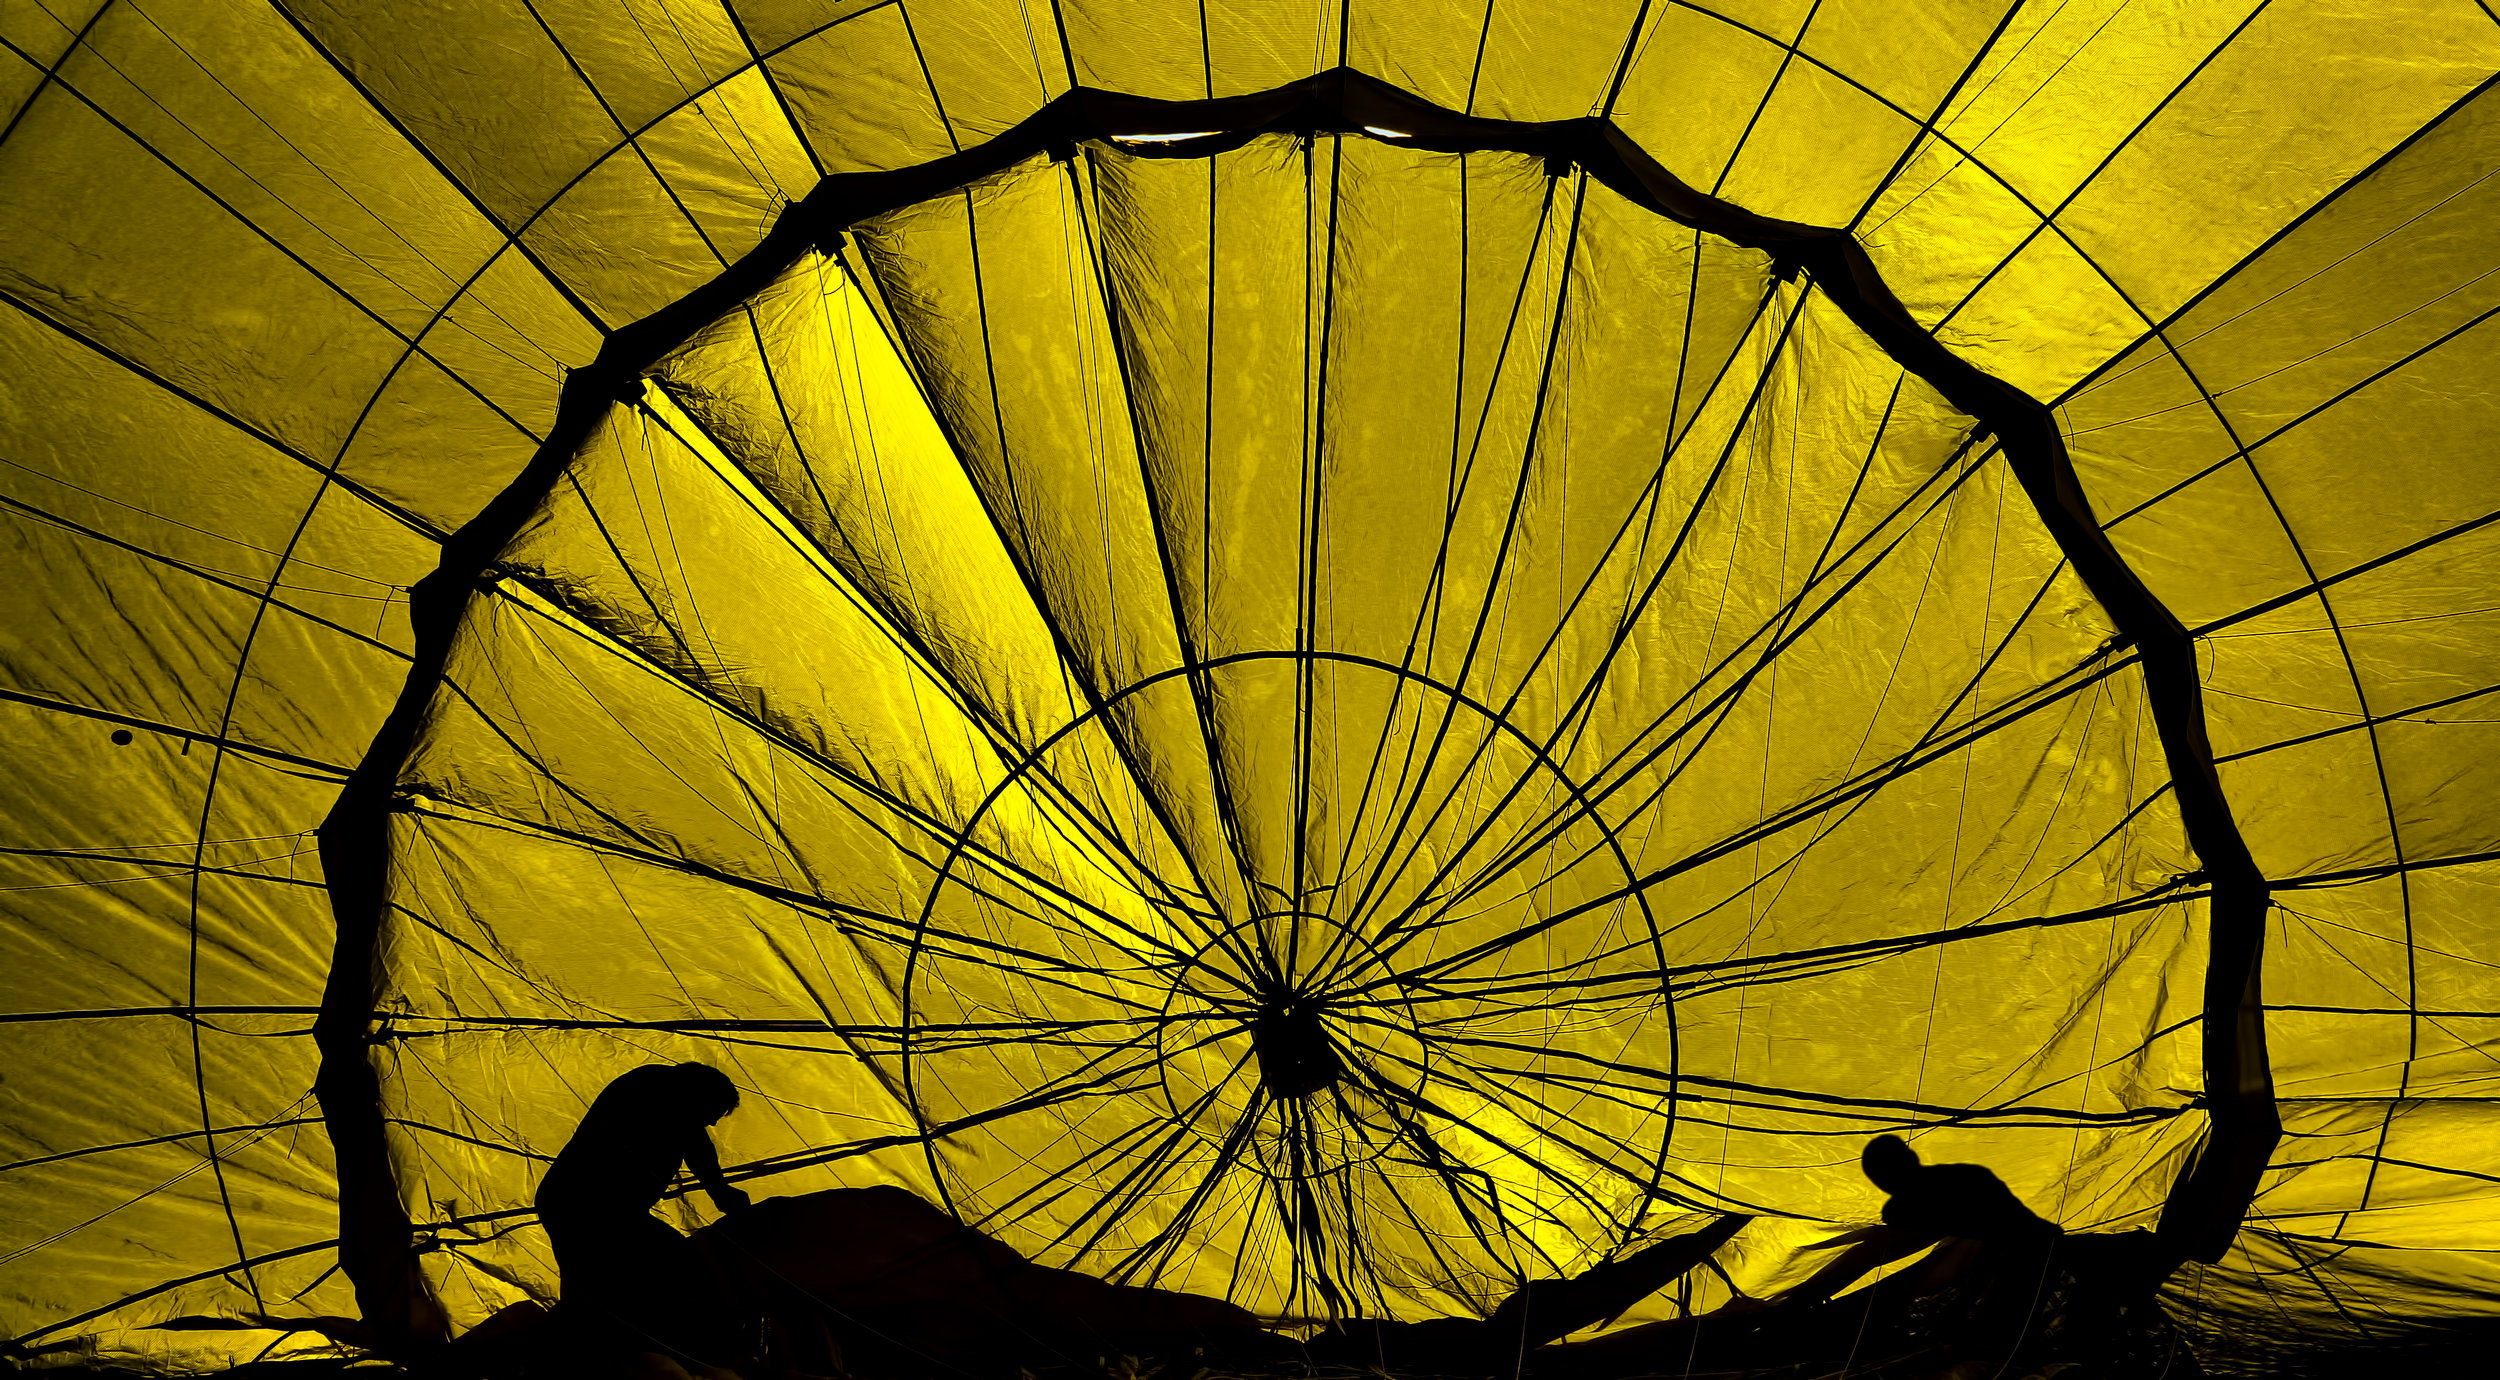 Parachute use to prevent death and major trauma when jumping from aircraft: - Randomized controlled trial